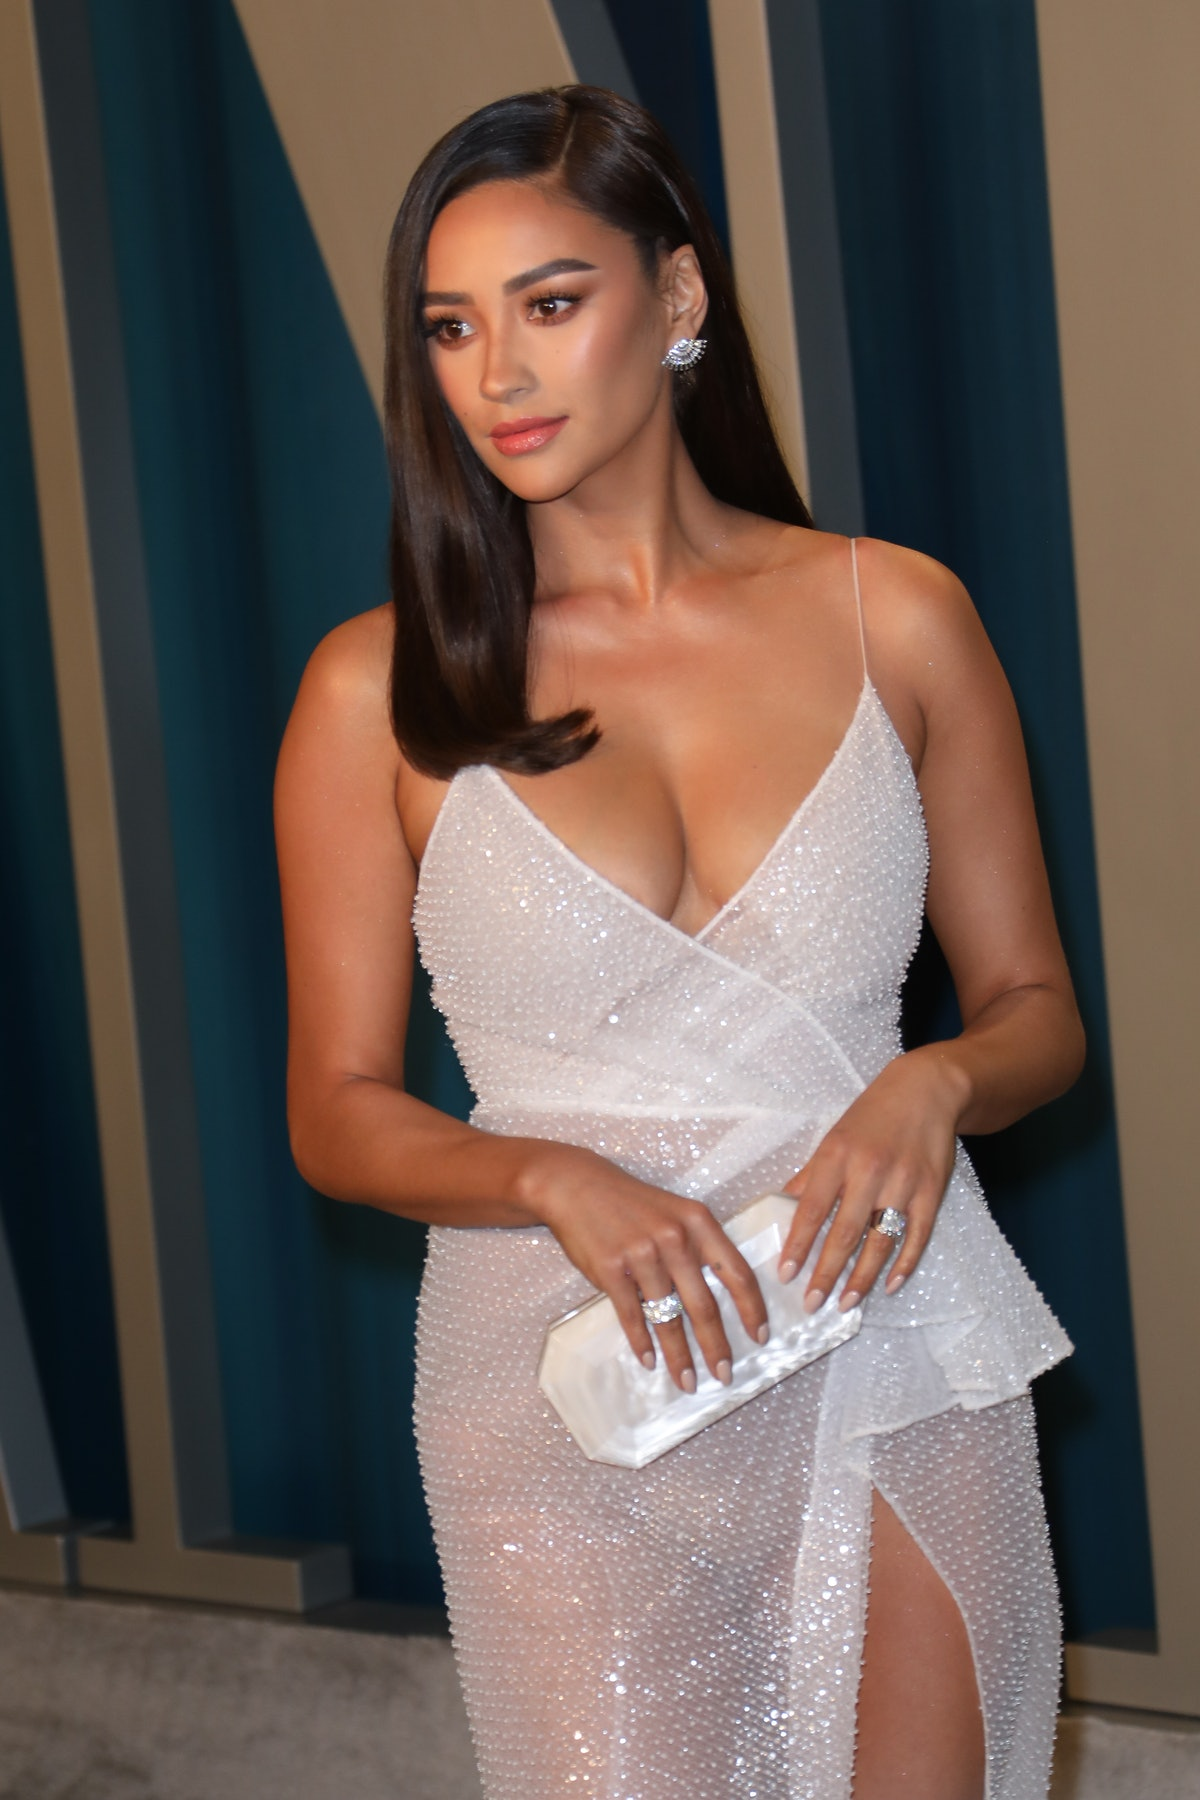 BEVERLY HILLS, CALIFORNIA - FEBRUARY 09: Shay Mitchell attends the 2020 Vanity Fair Oscar Party at Wallis Annenberg Center for the Performing Arts on February 09, 2020 in Beverly Hills, California. (Photo by Toni Anne Barson/WireImage)